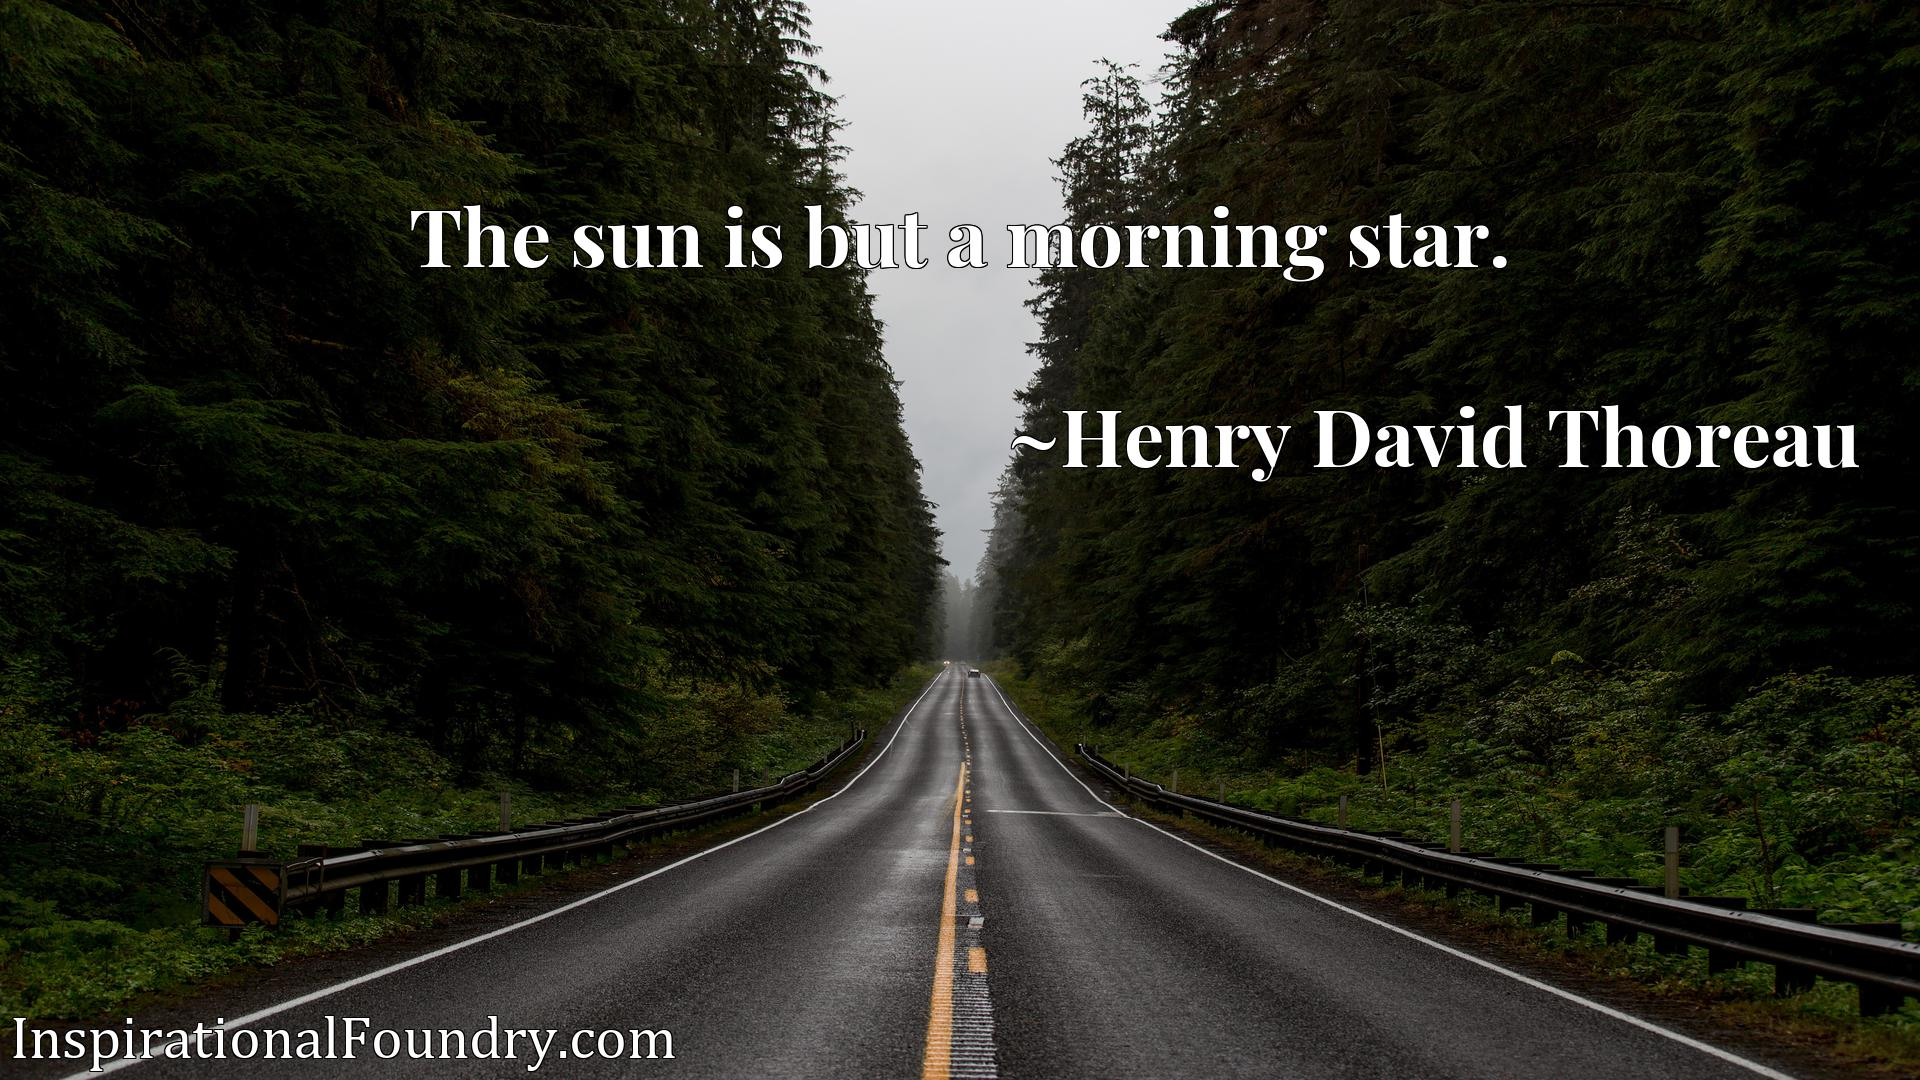 The sun is but a morning star.